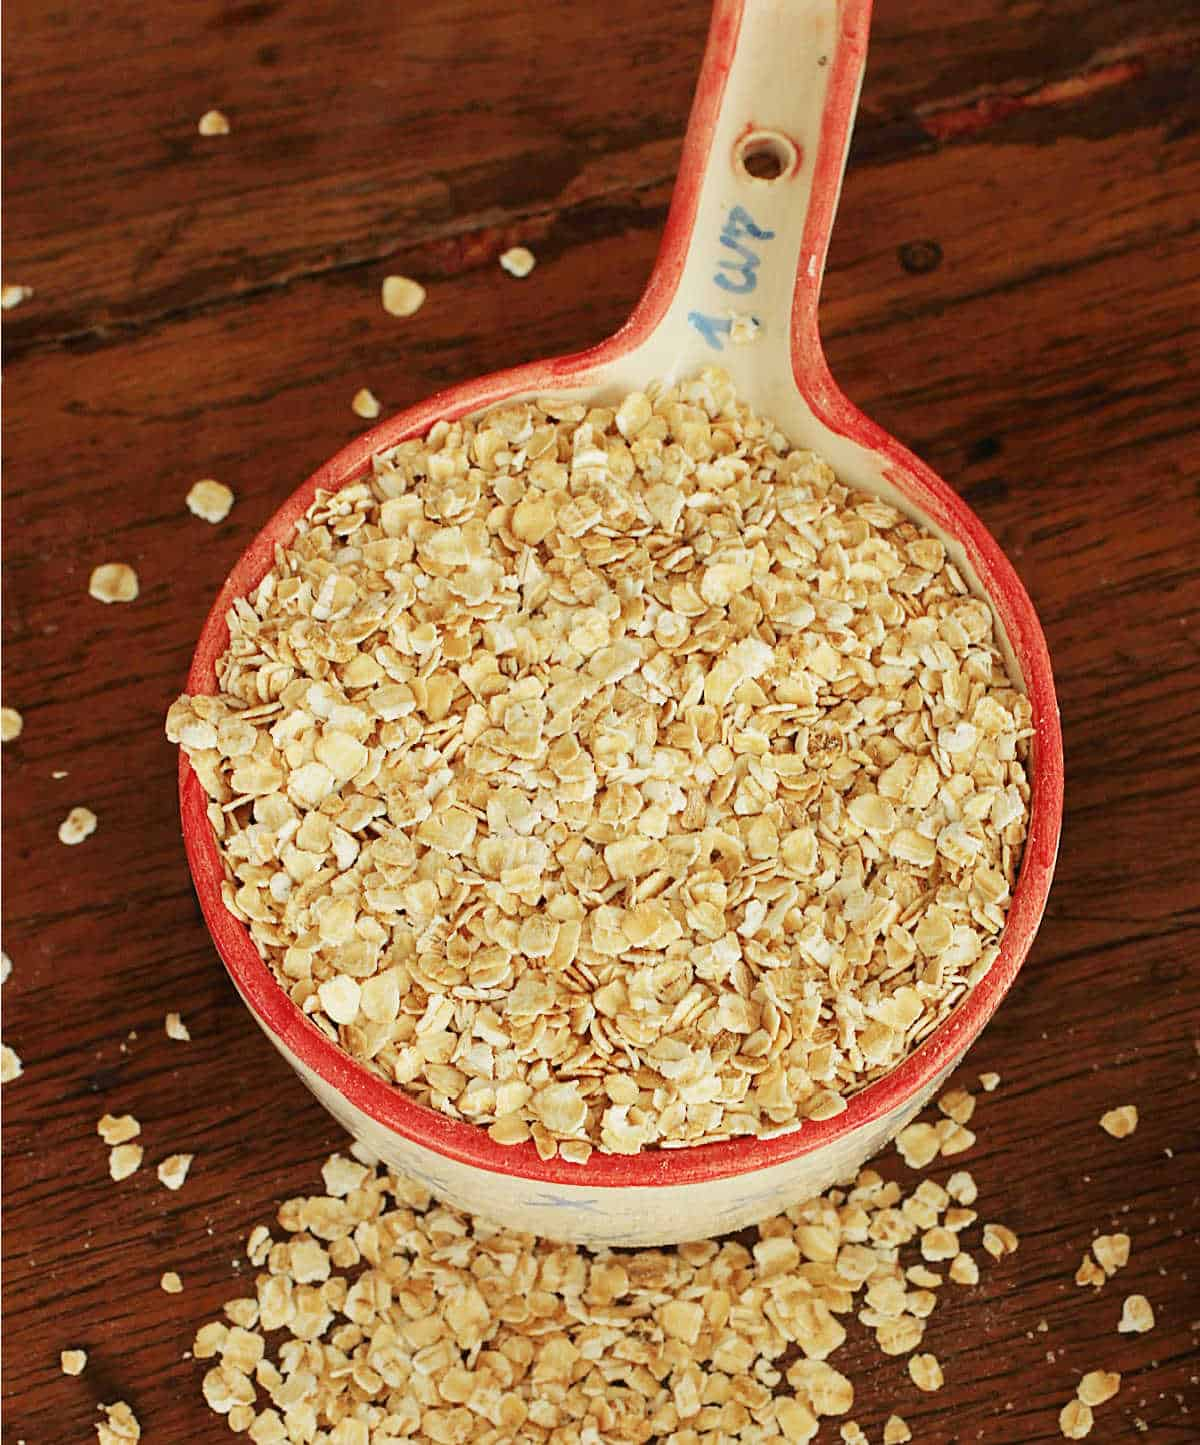 Ceramic measuring cup overflowing with oats on wooden table